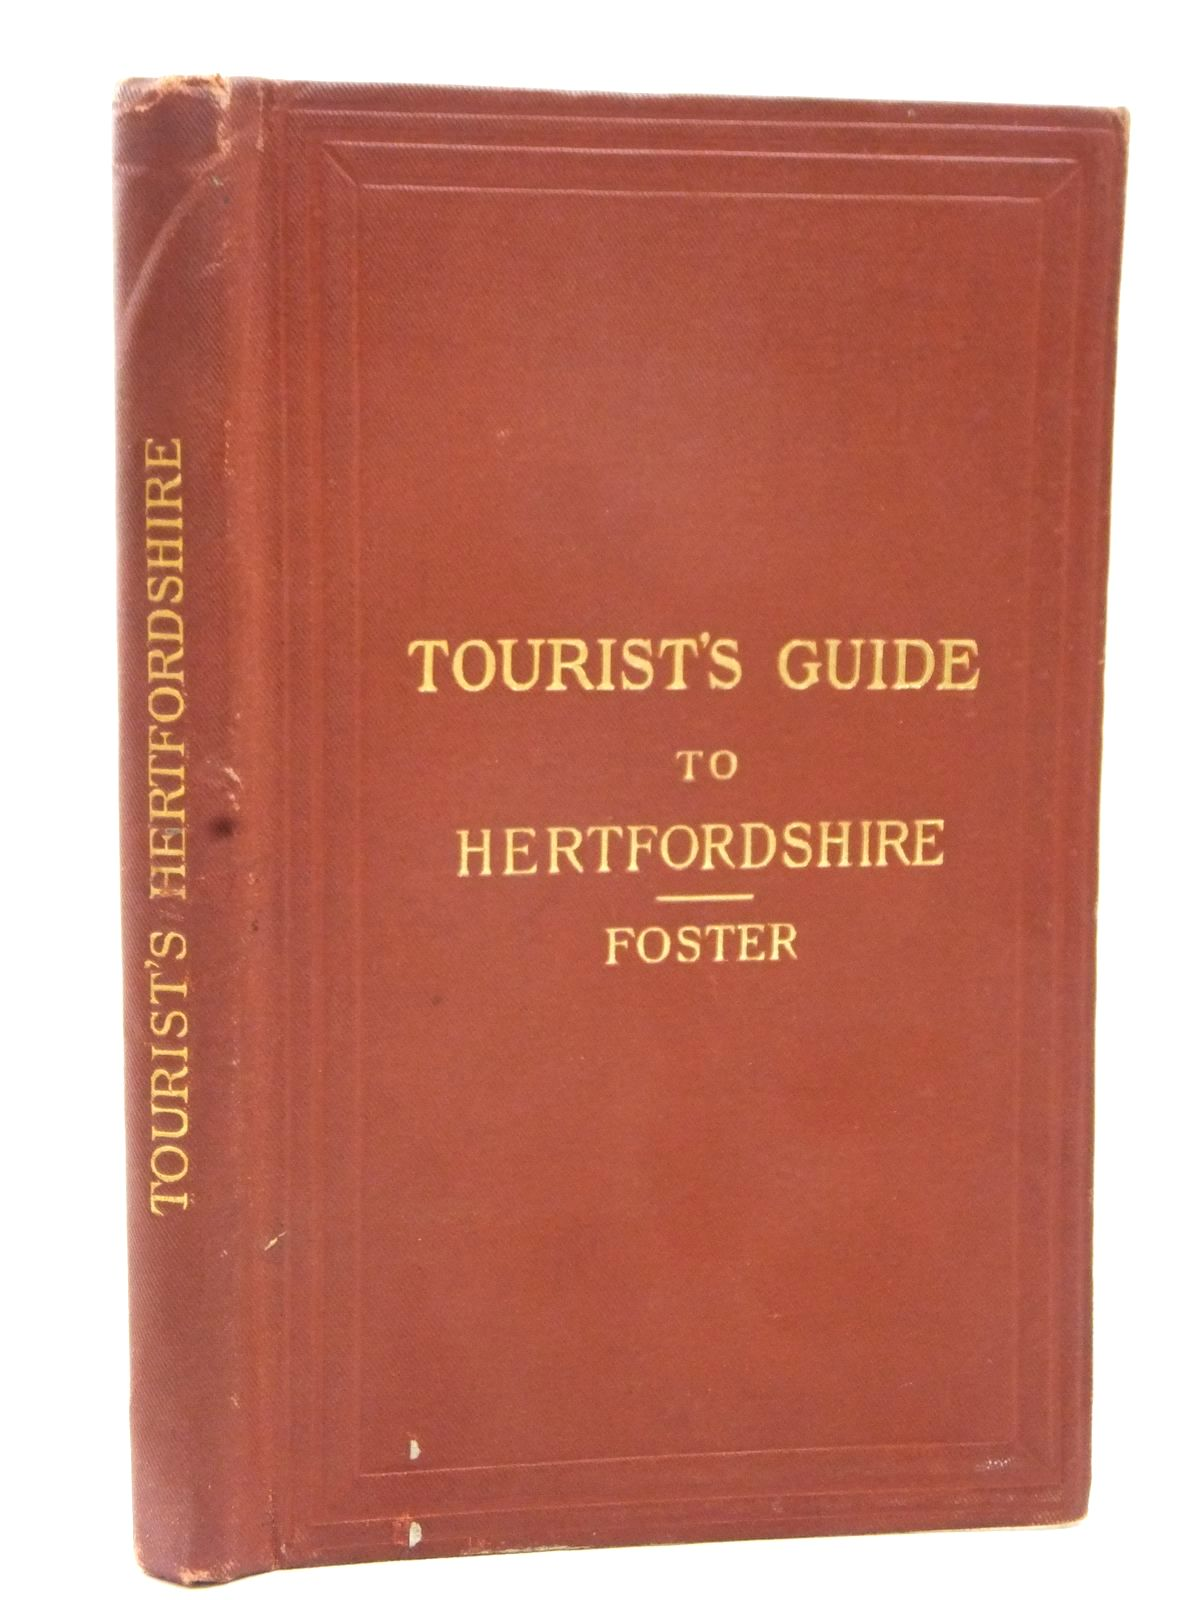 Photo of TOURIST'S GUIDE TO HERTFORDSHIRE written by Foster, A.J. published by Edward Stanford (STOCK CODE: 1609448)  for sale by Stella & Rose's Books